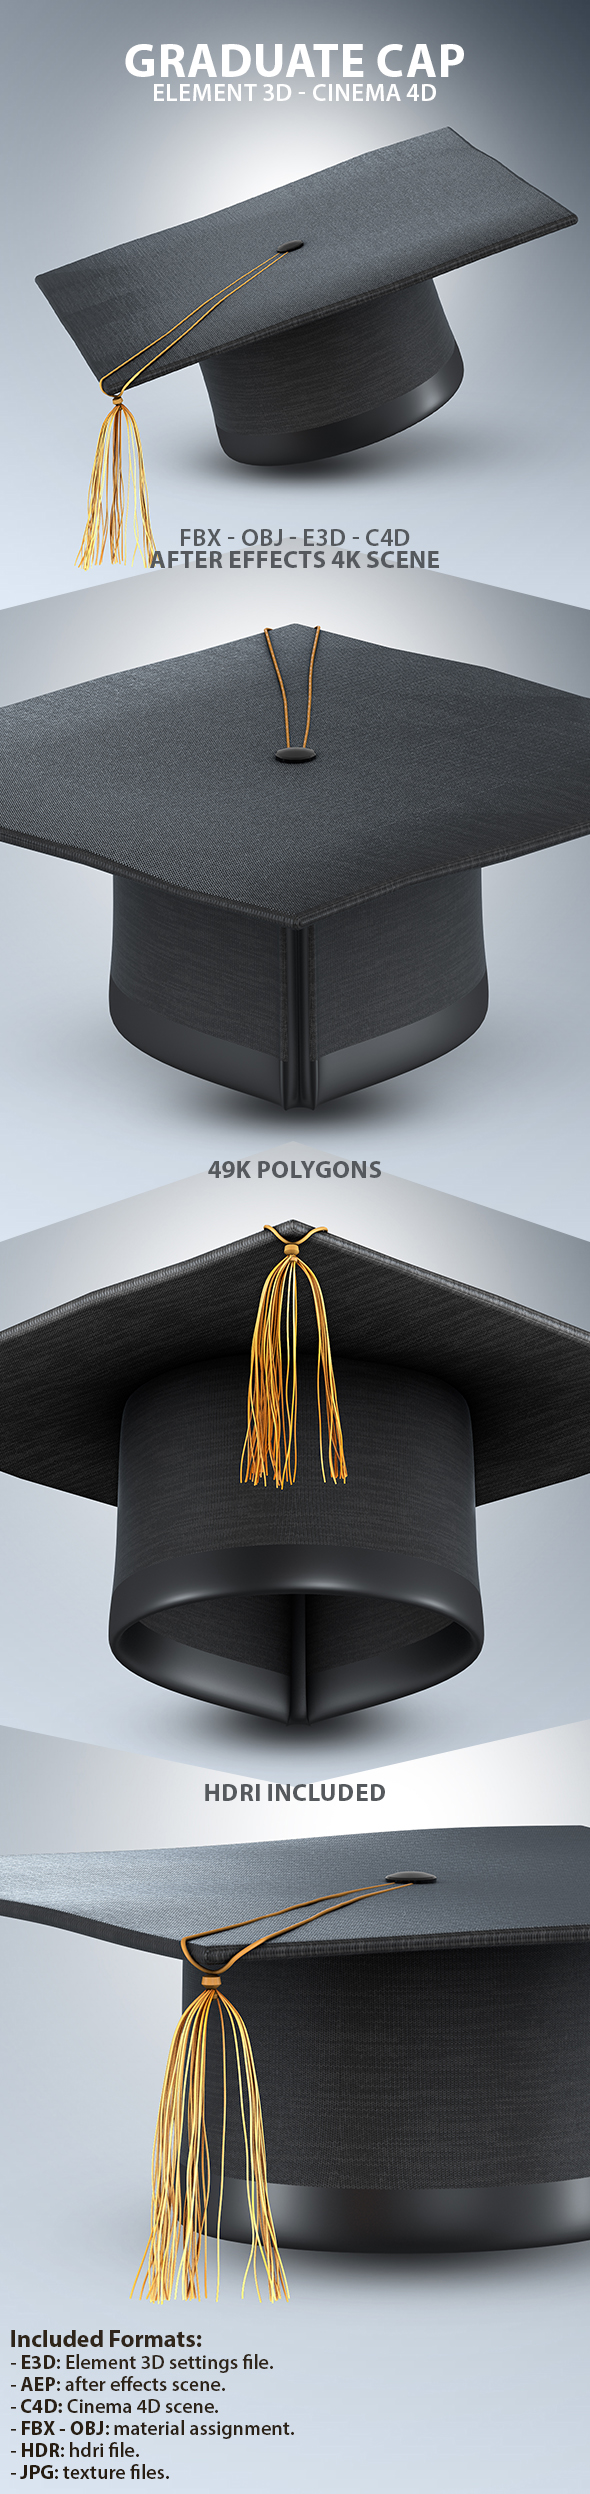 Graduate Cap 3D Model for Element 3D & Cinema 4D